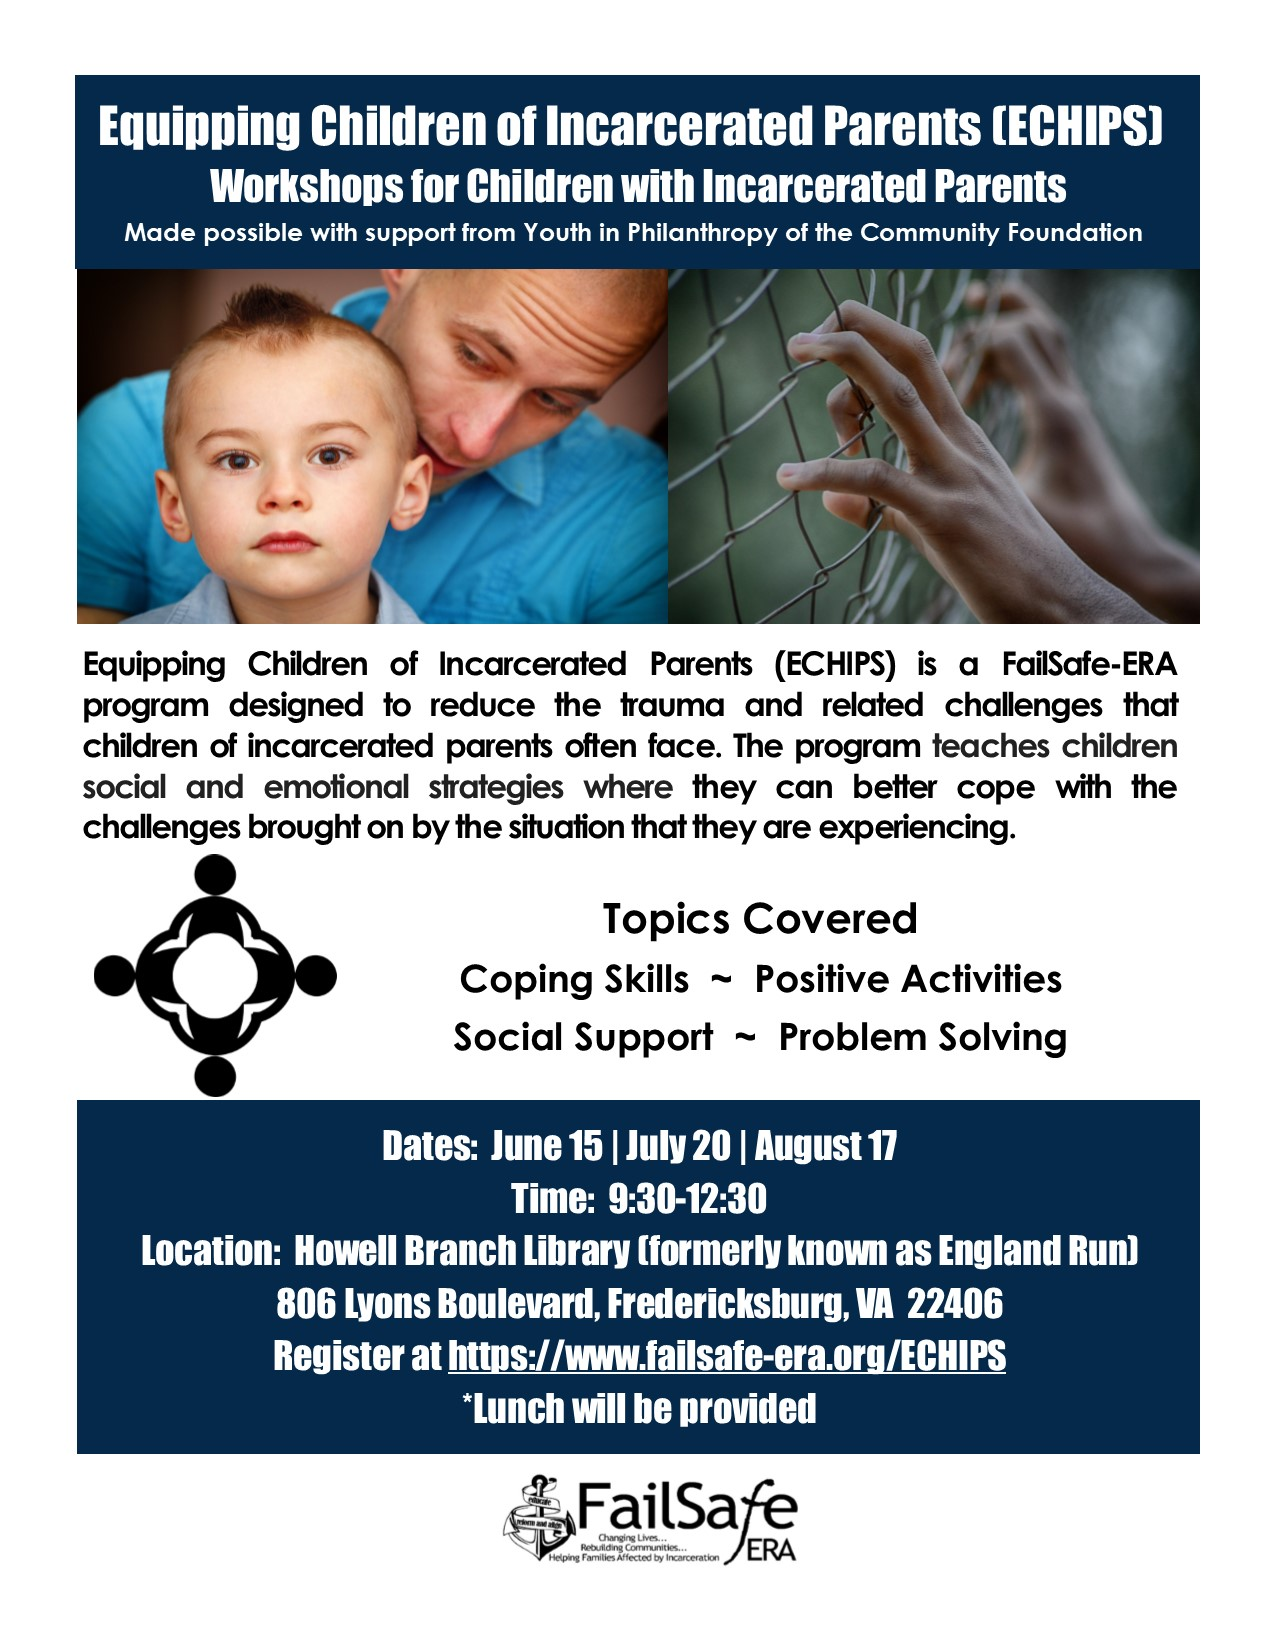 Kids With Parents In Prison Often Deal >> Equipping Children Of Incarcerated Parents Echips Workshops